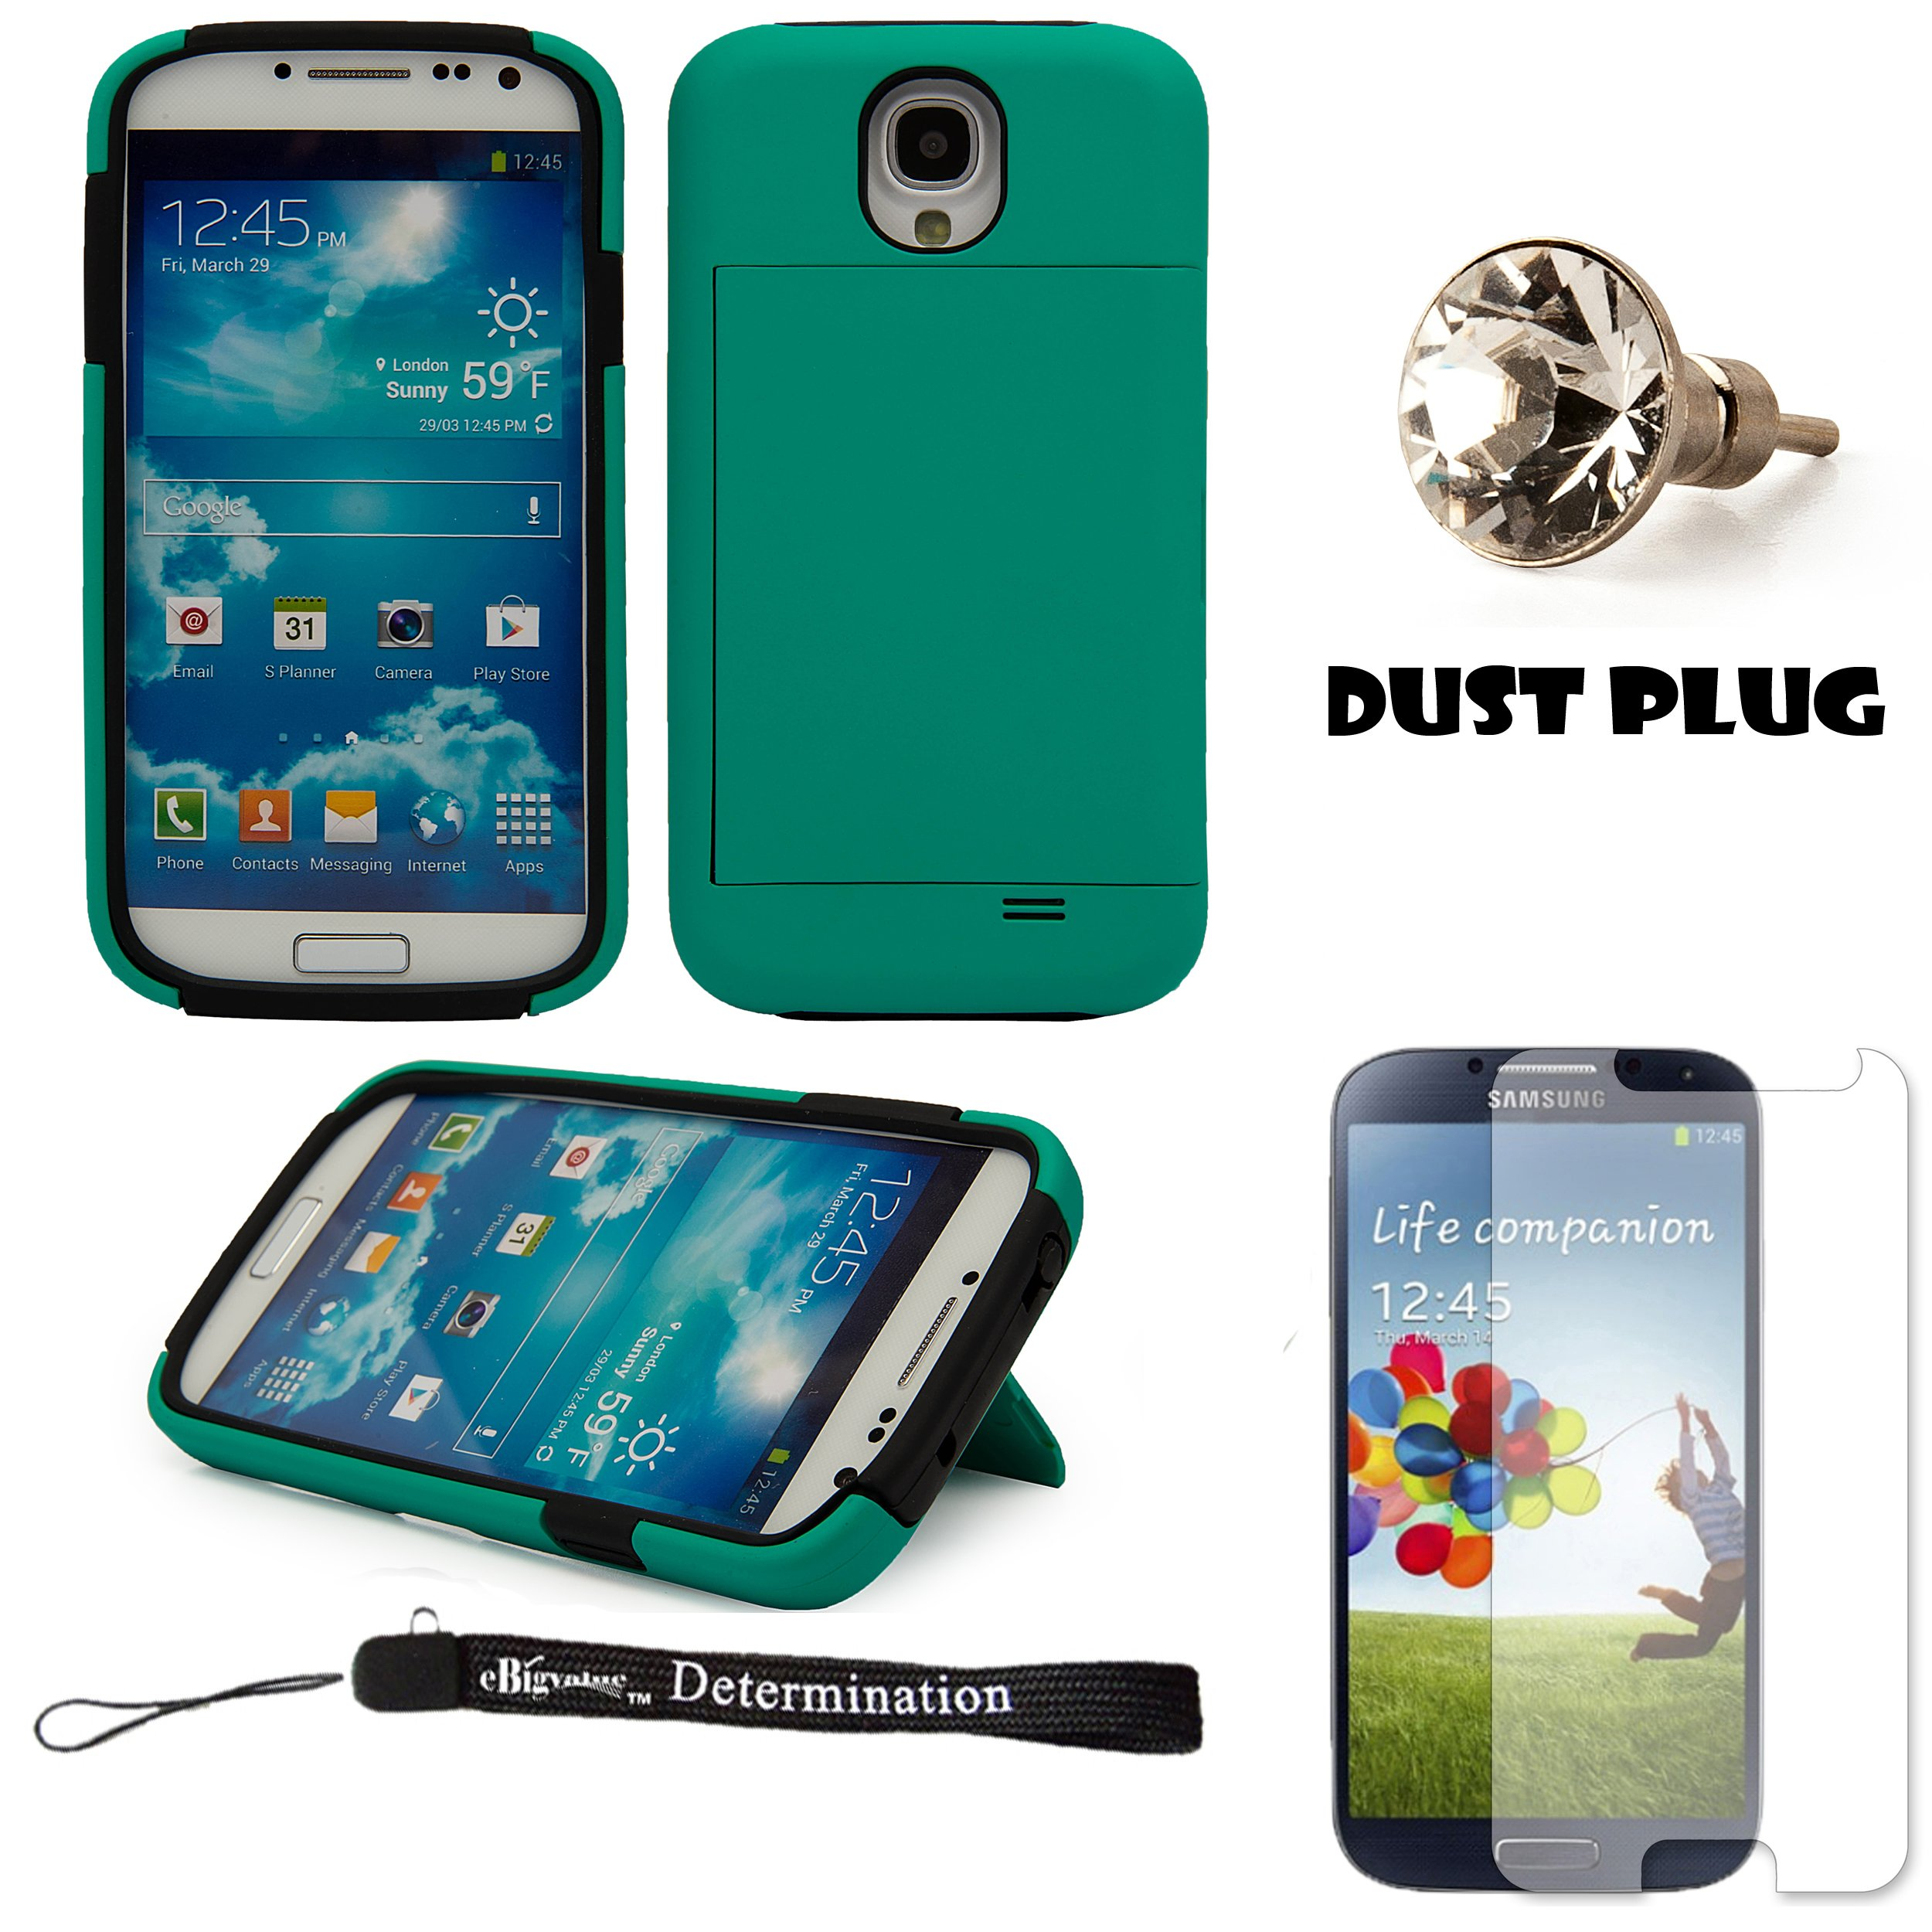 Teal 2-Piece hard Protective Case with Credit Card Holder Slot and Stand For Samsung Galaxy S4 Android Smartphone 4G LTE (Jelly Bean) + Silver Swarovski Crystal Headphone Jack Dust Plug + Samsung Galaxy S4 Screen Guard Protector + an eBigValue ™ Determi